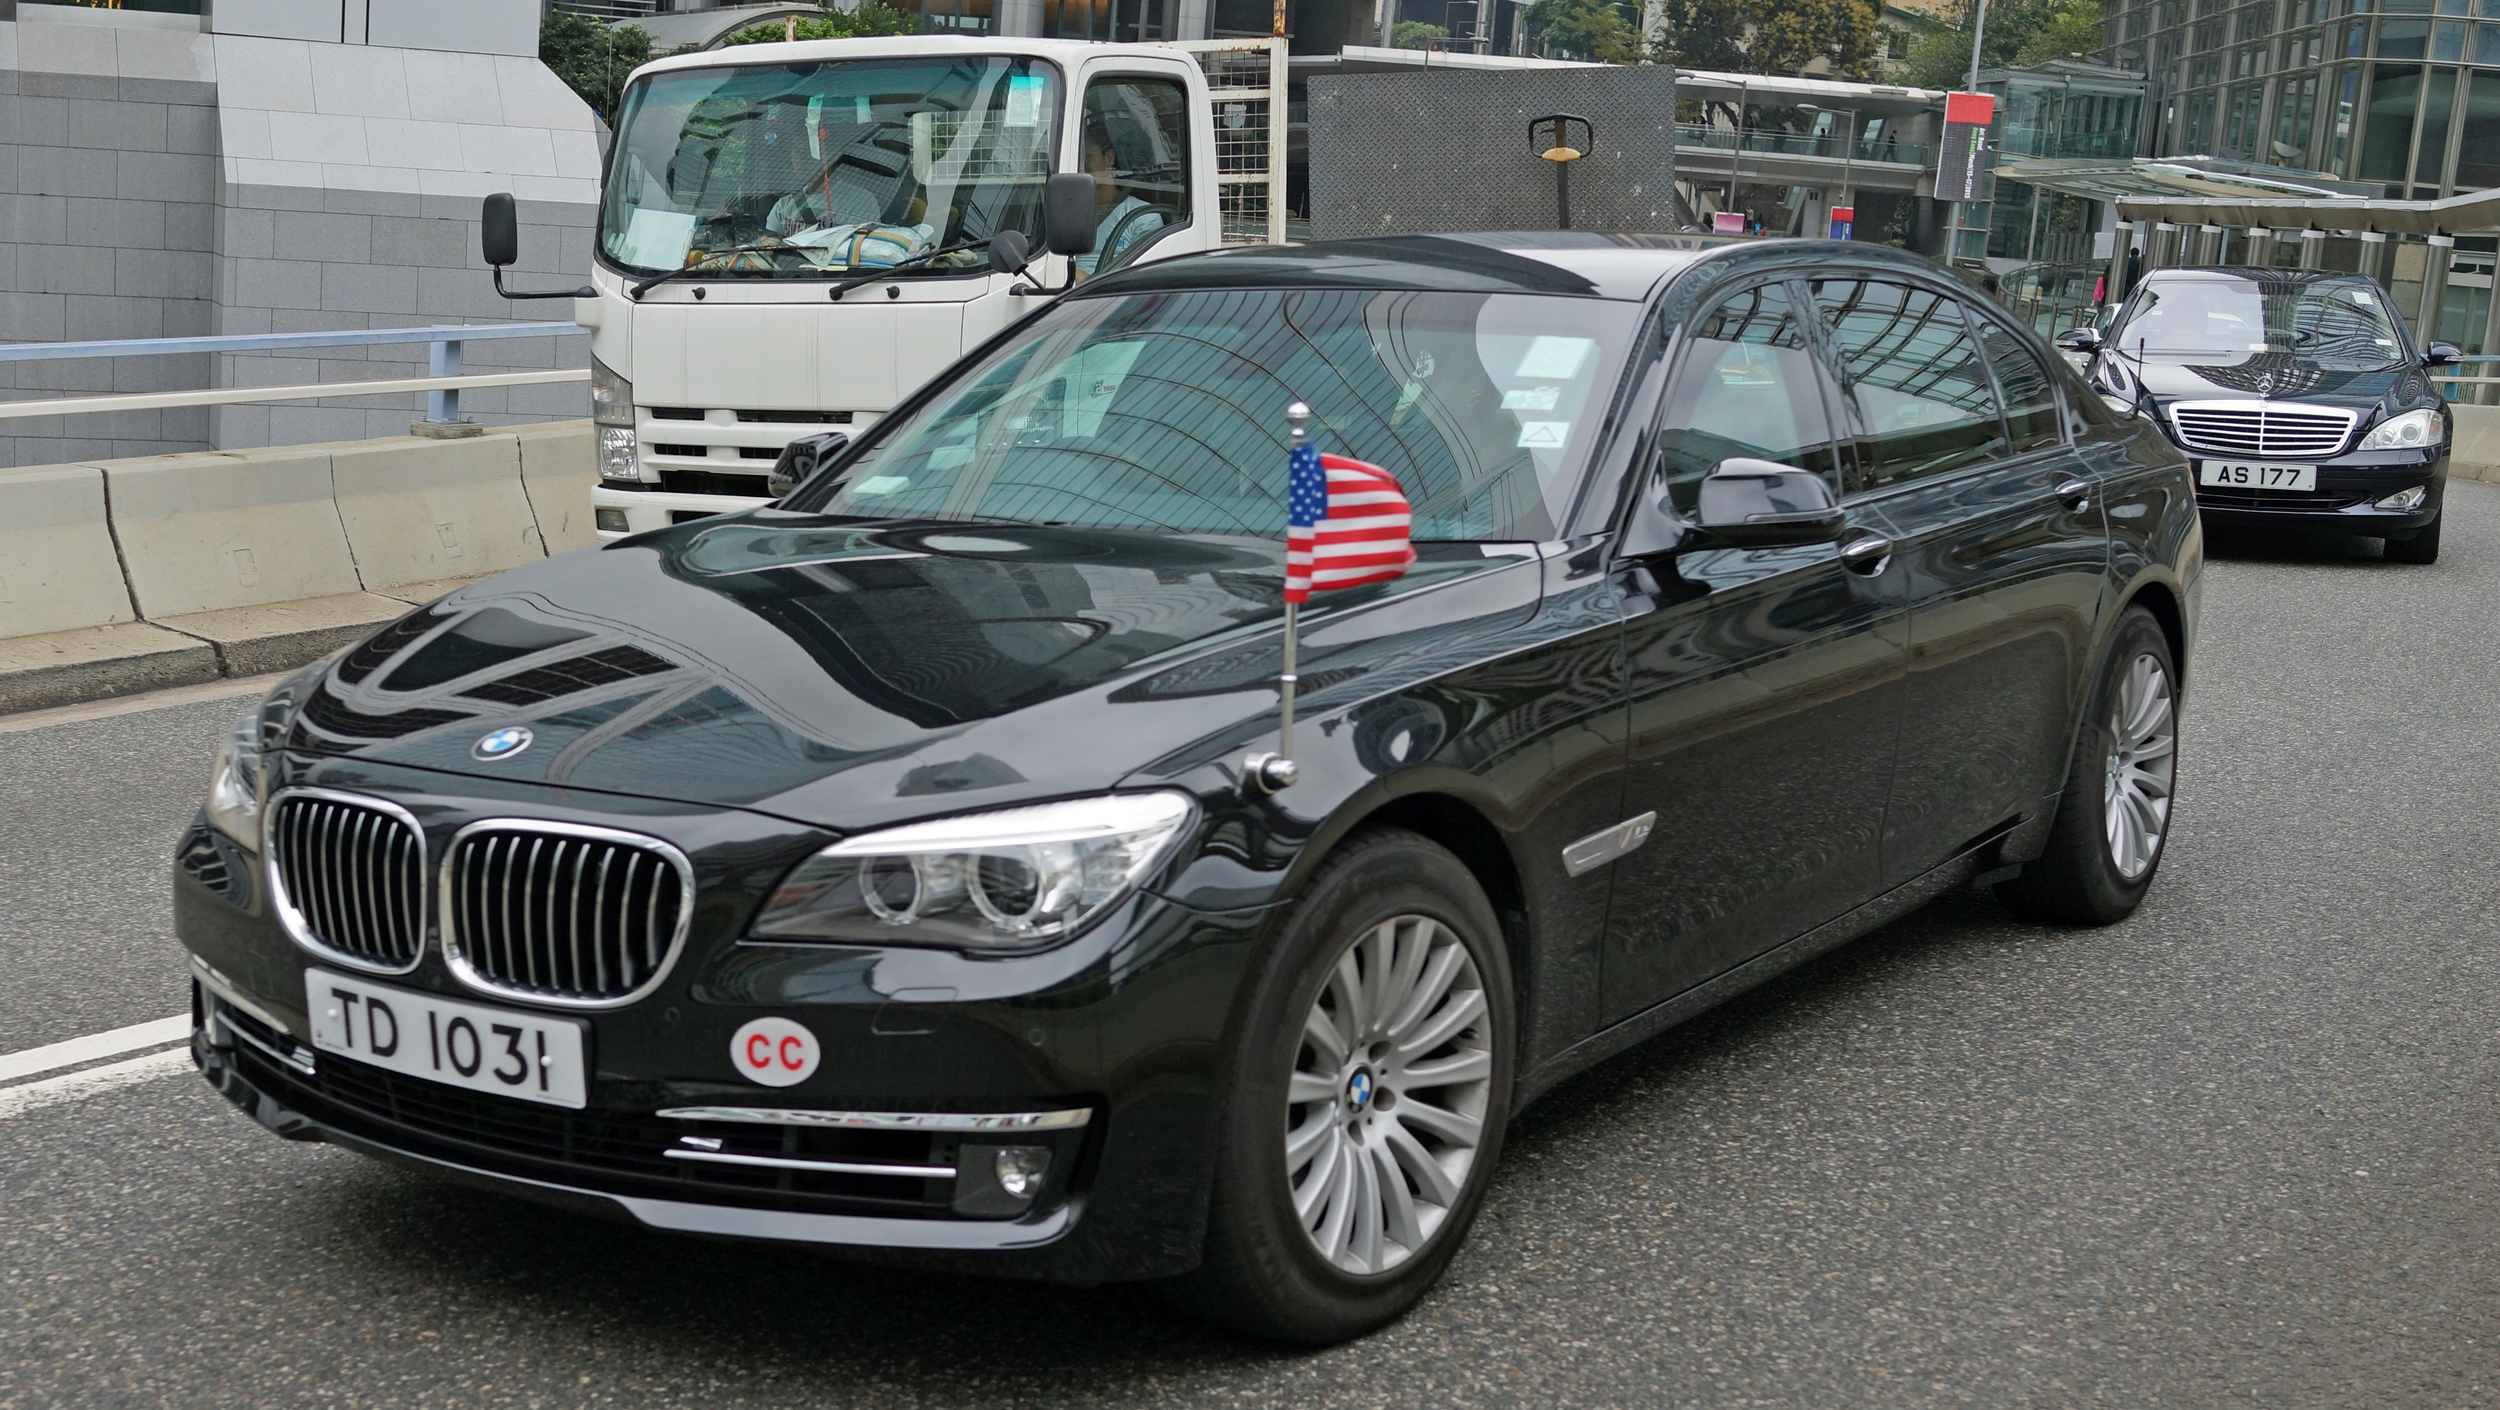 .... felt obliged to show the official car of the US Consul General flying the flag - what is a mystery is why the US Consulate use BMW's and Lexus's, surely it is time that they stuck the flag on a Tesla the all electric US built super car....